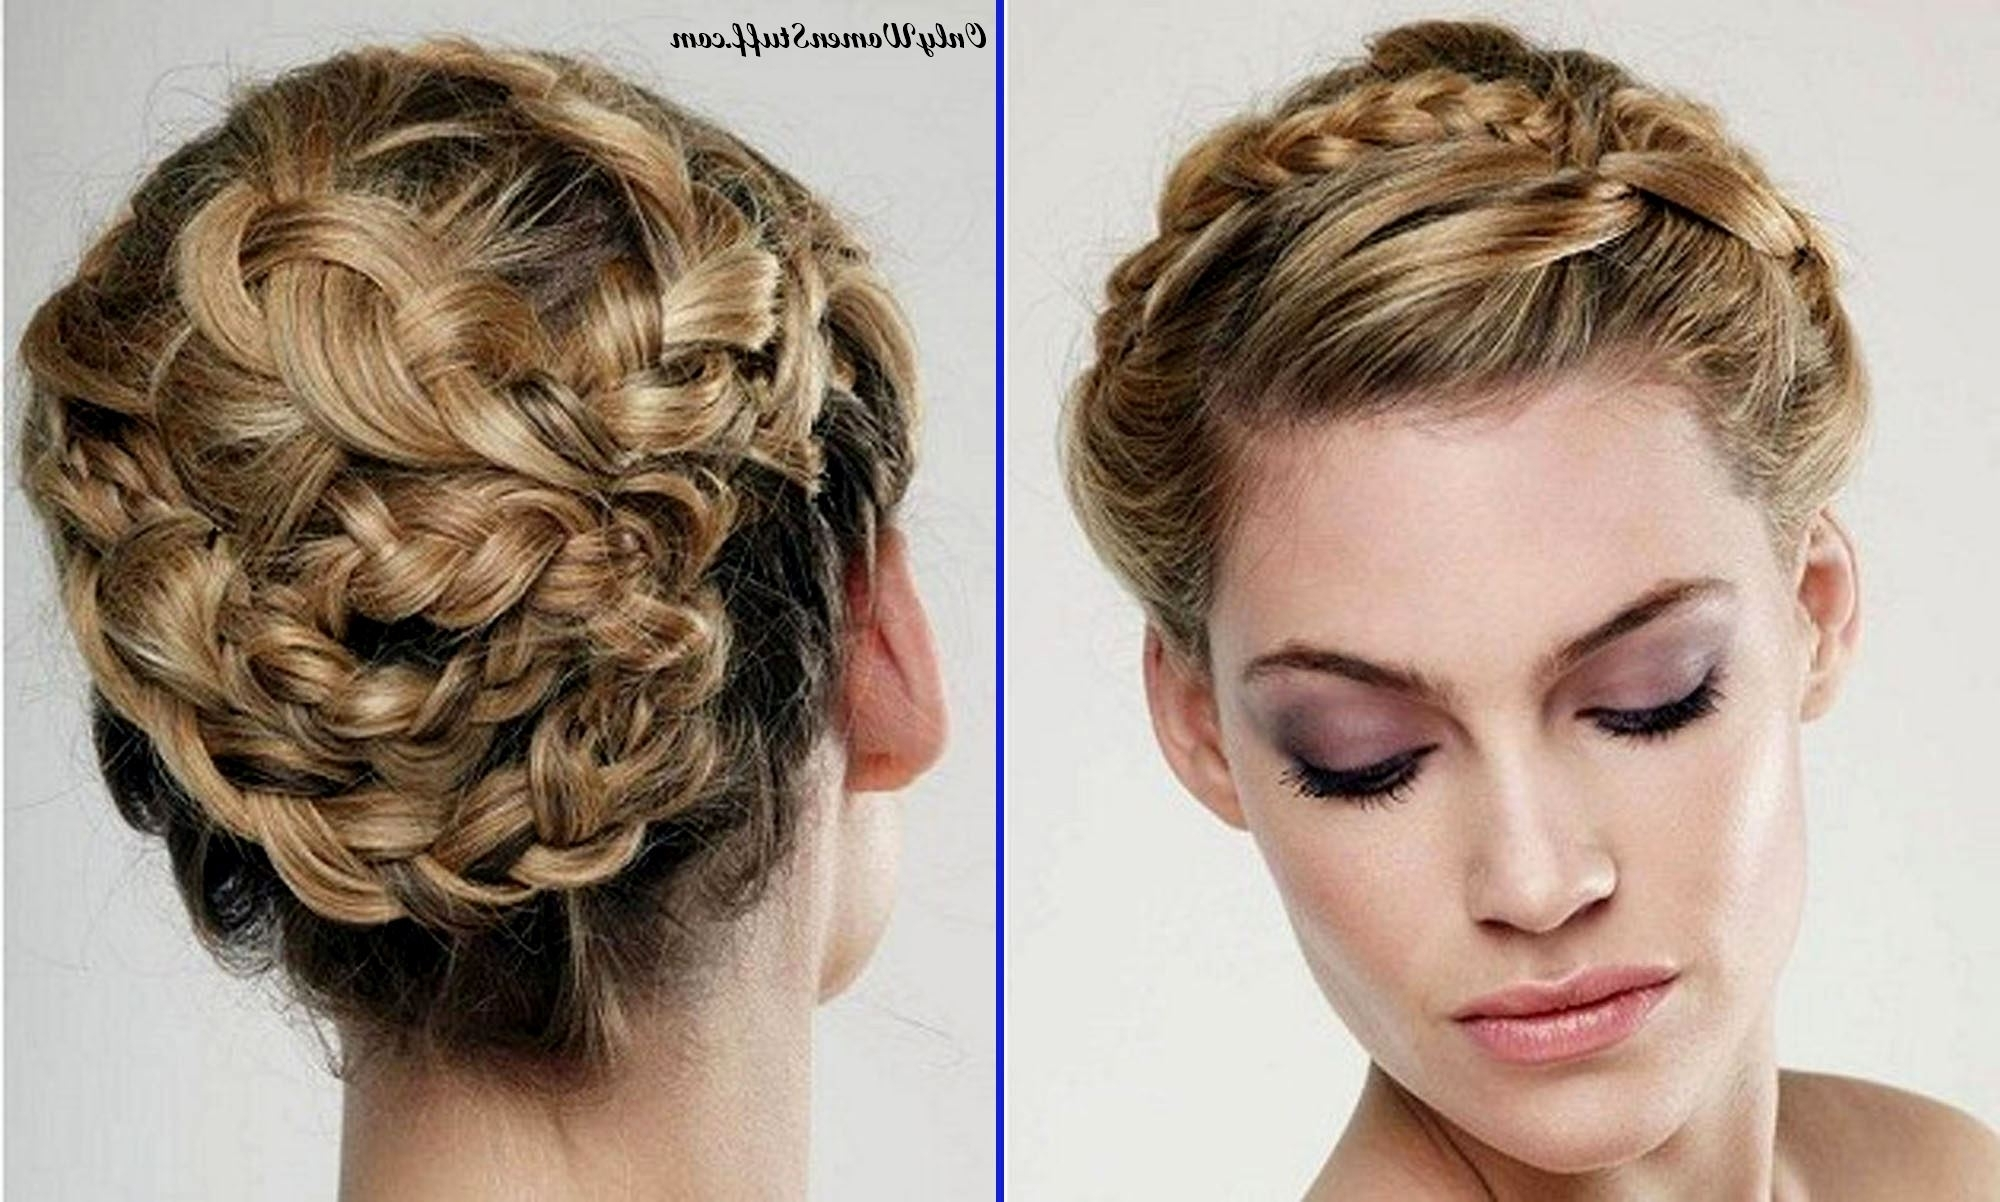 50+ Easy Prom Hairstyles & Updos Ideas (Stepstep) Within Updo Hairstyles For Short Hair Prom (View 6 of 15)